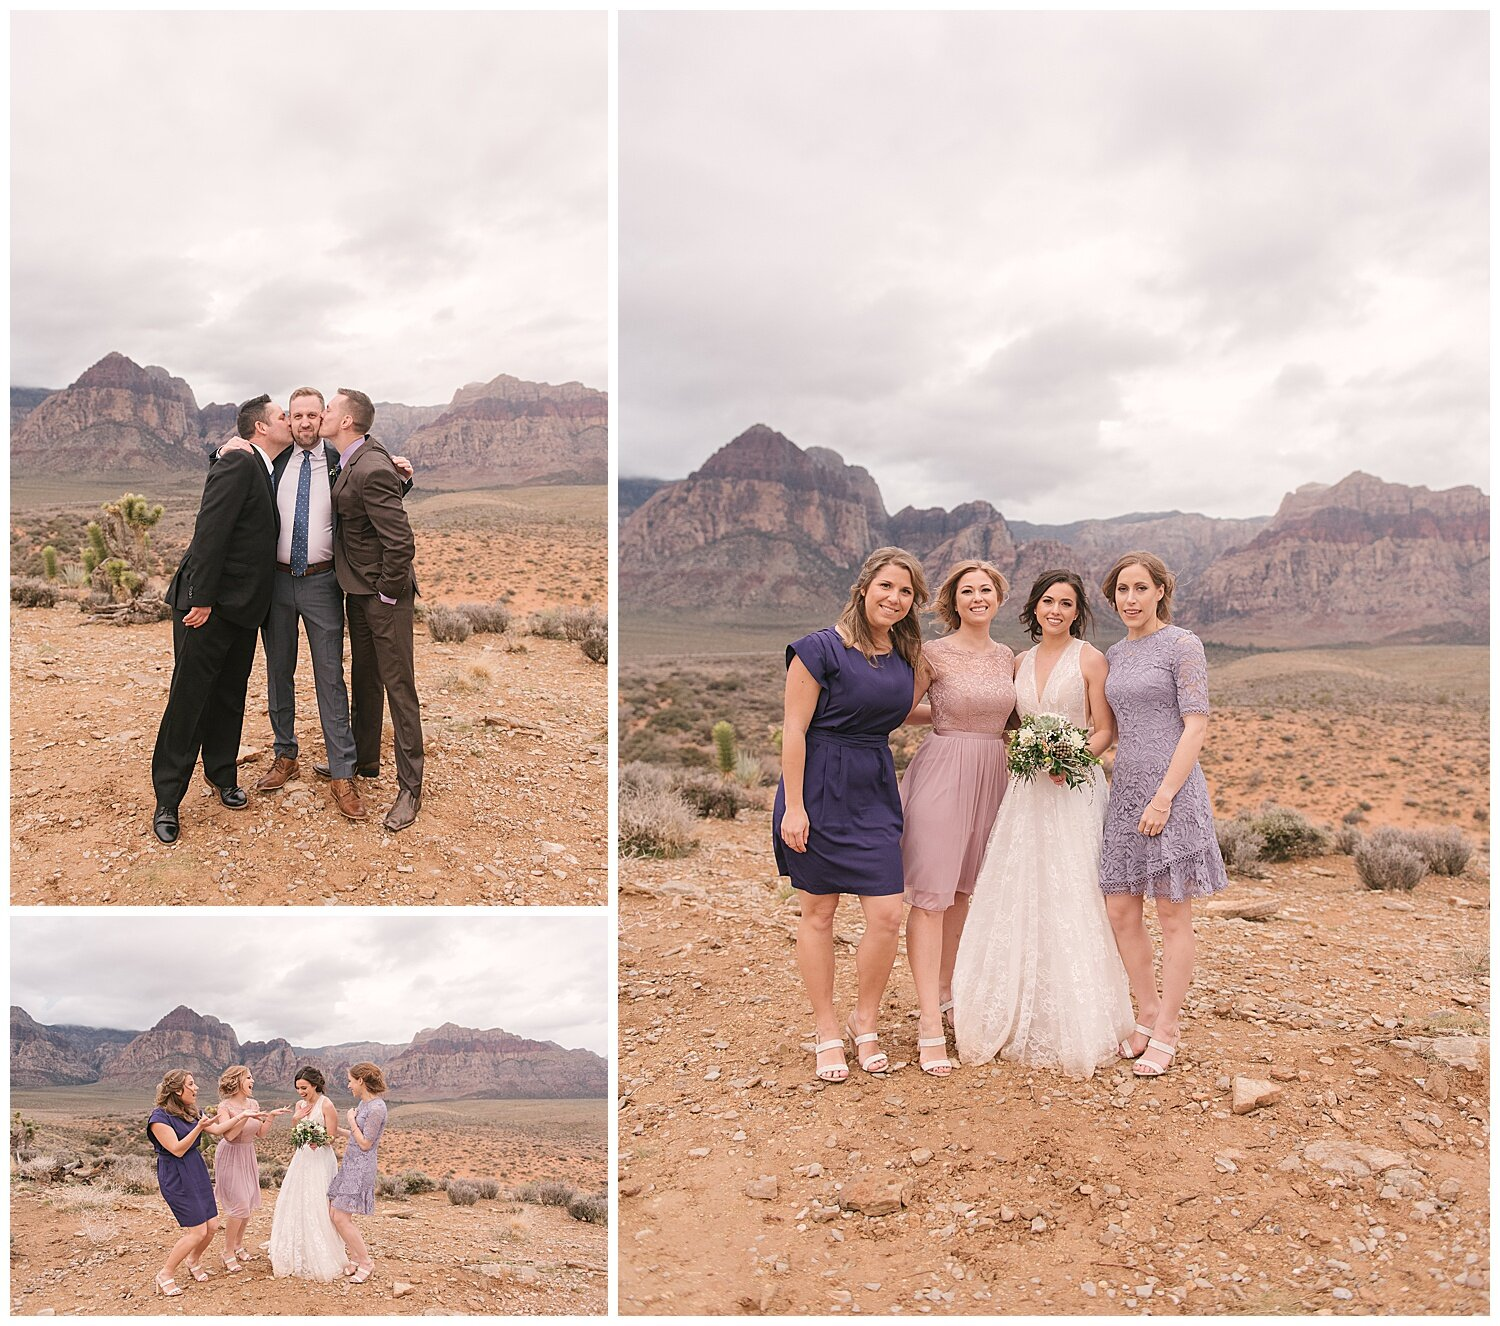 red-rock-canyon-wedding-photographer-blog-36.jpg